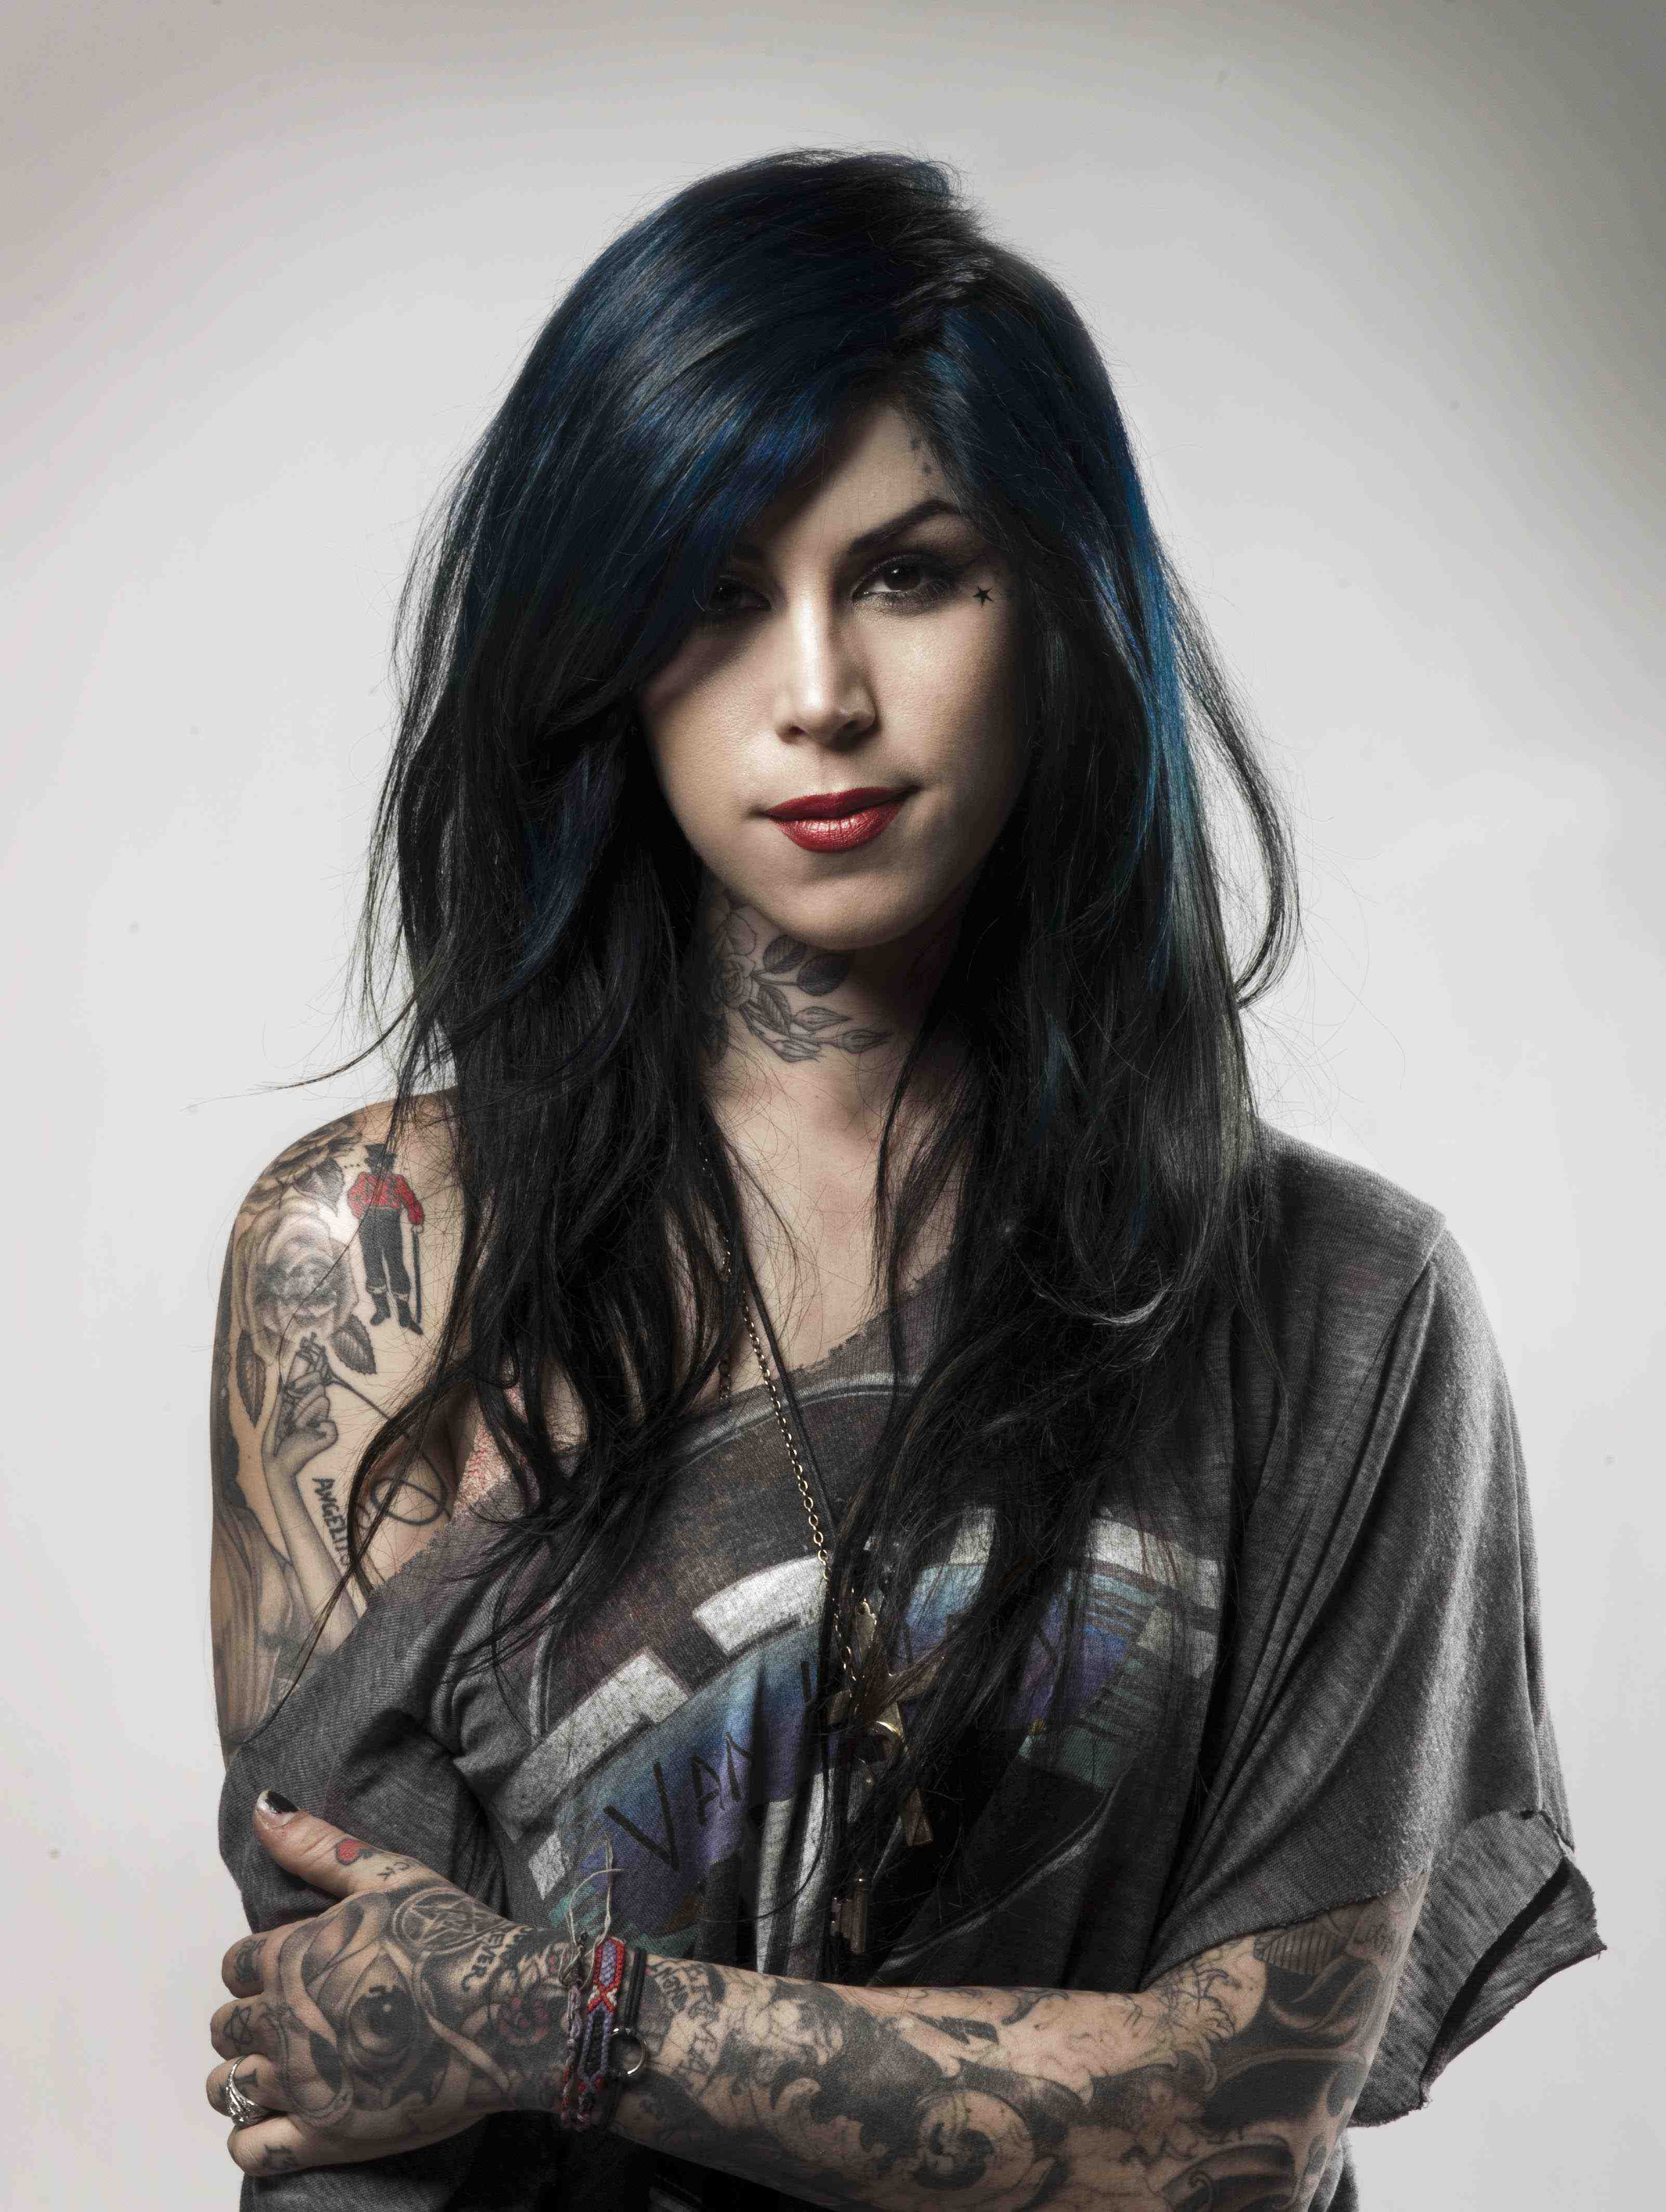 Oral hygiene habits of the interesting l a ink 39 s kat von for How to get tattooed by kat von d